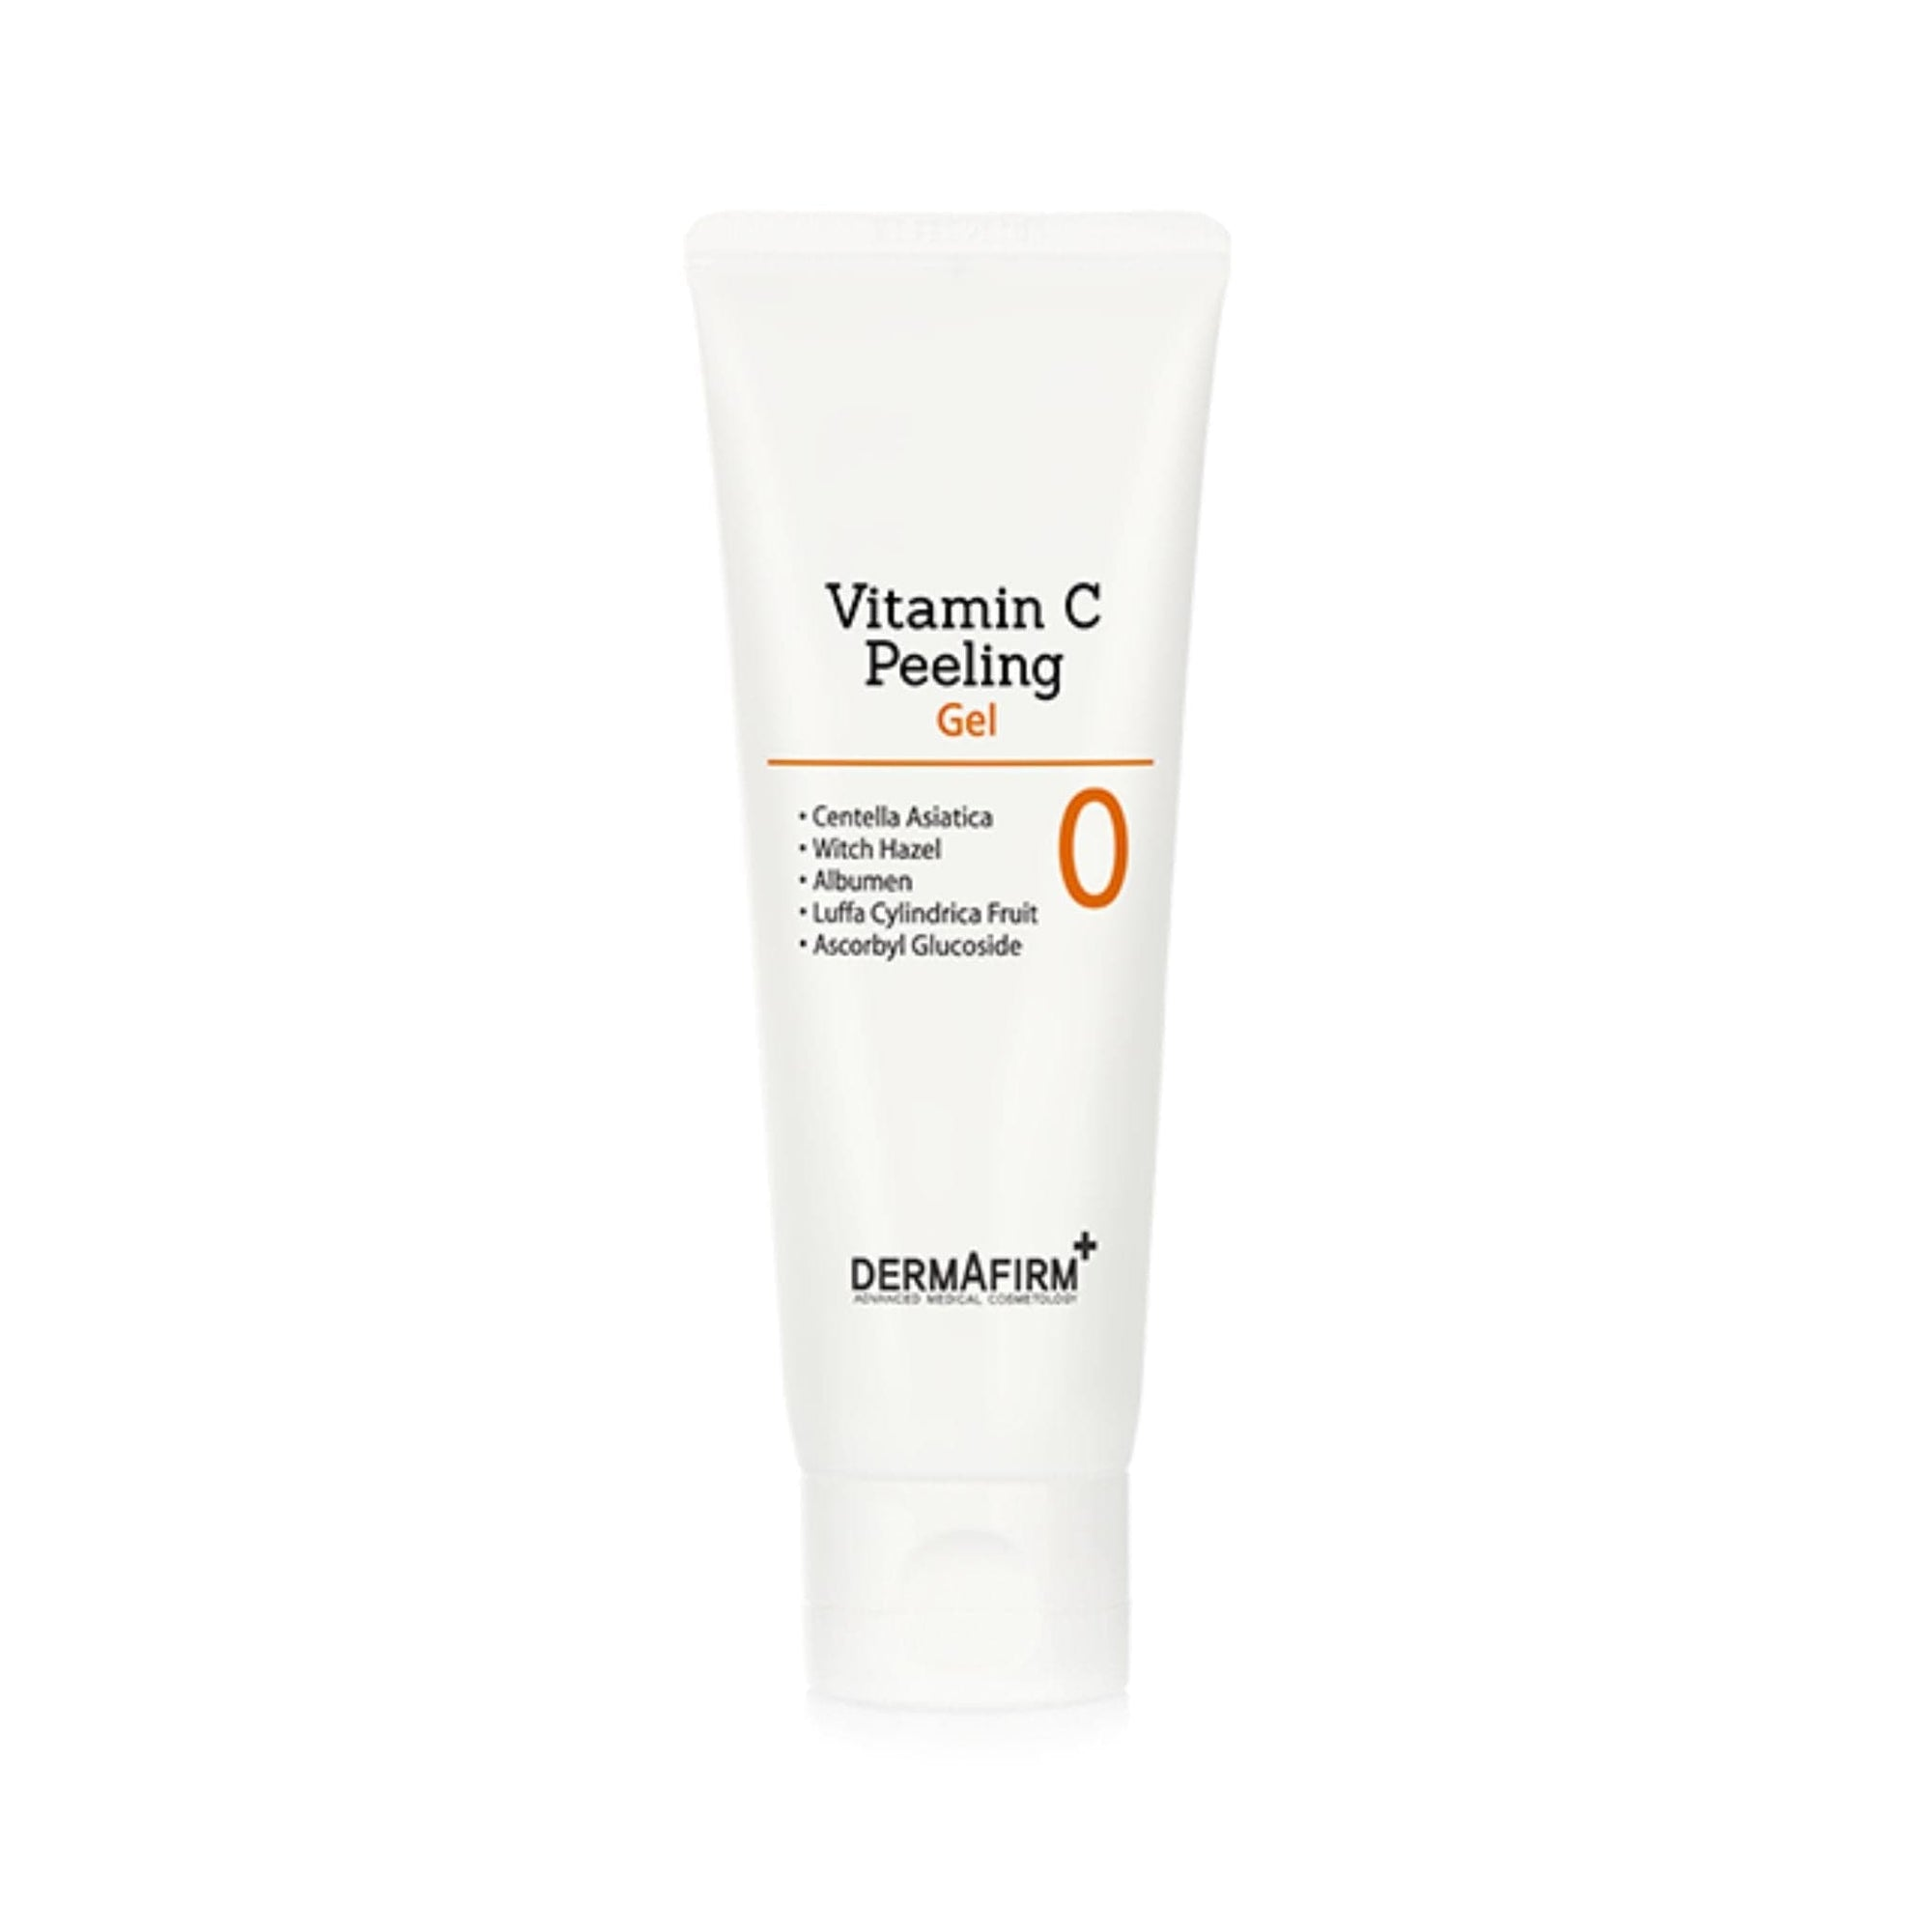 Vitamin C Peeling Gel - 100ml